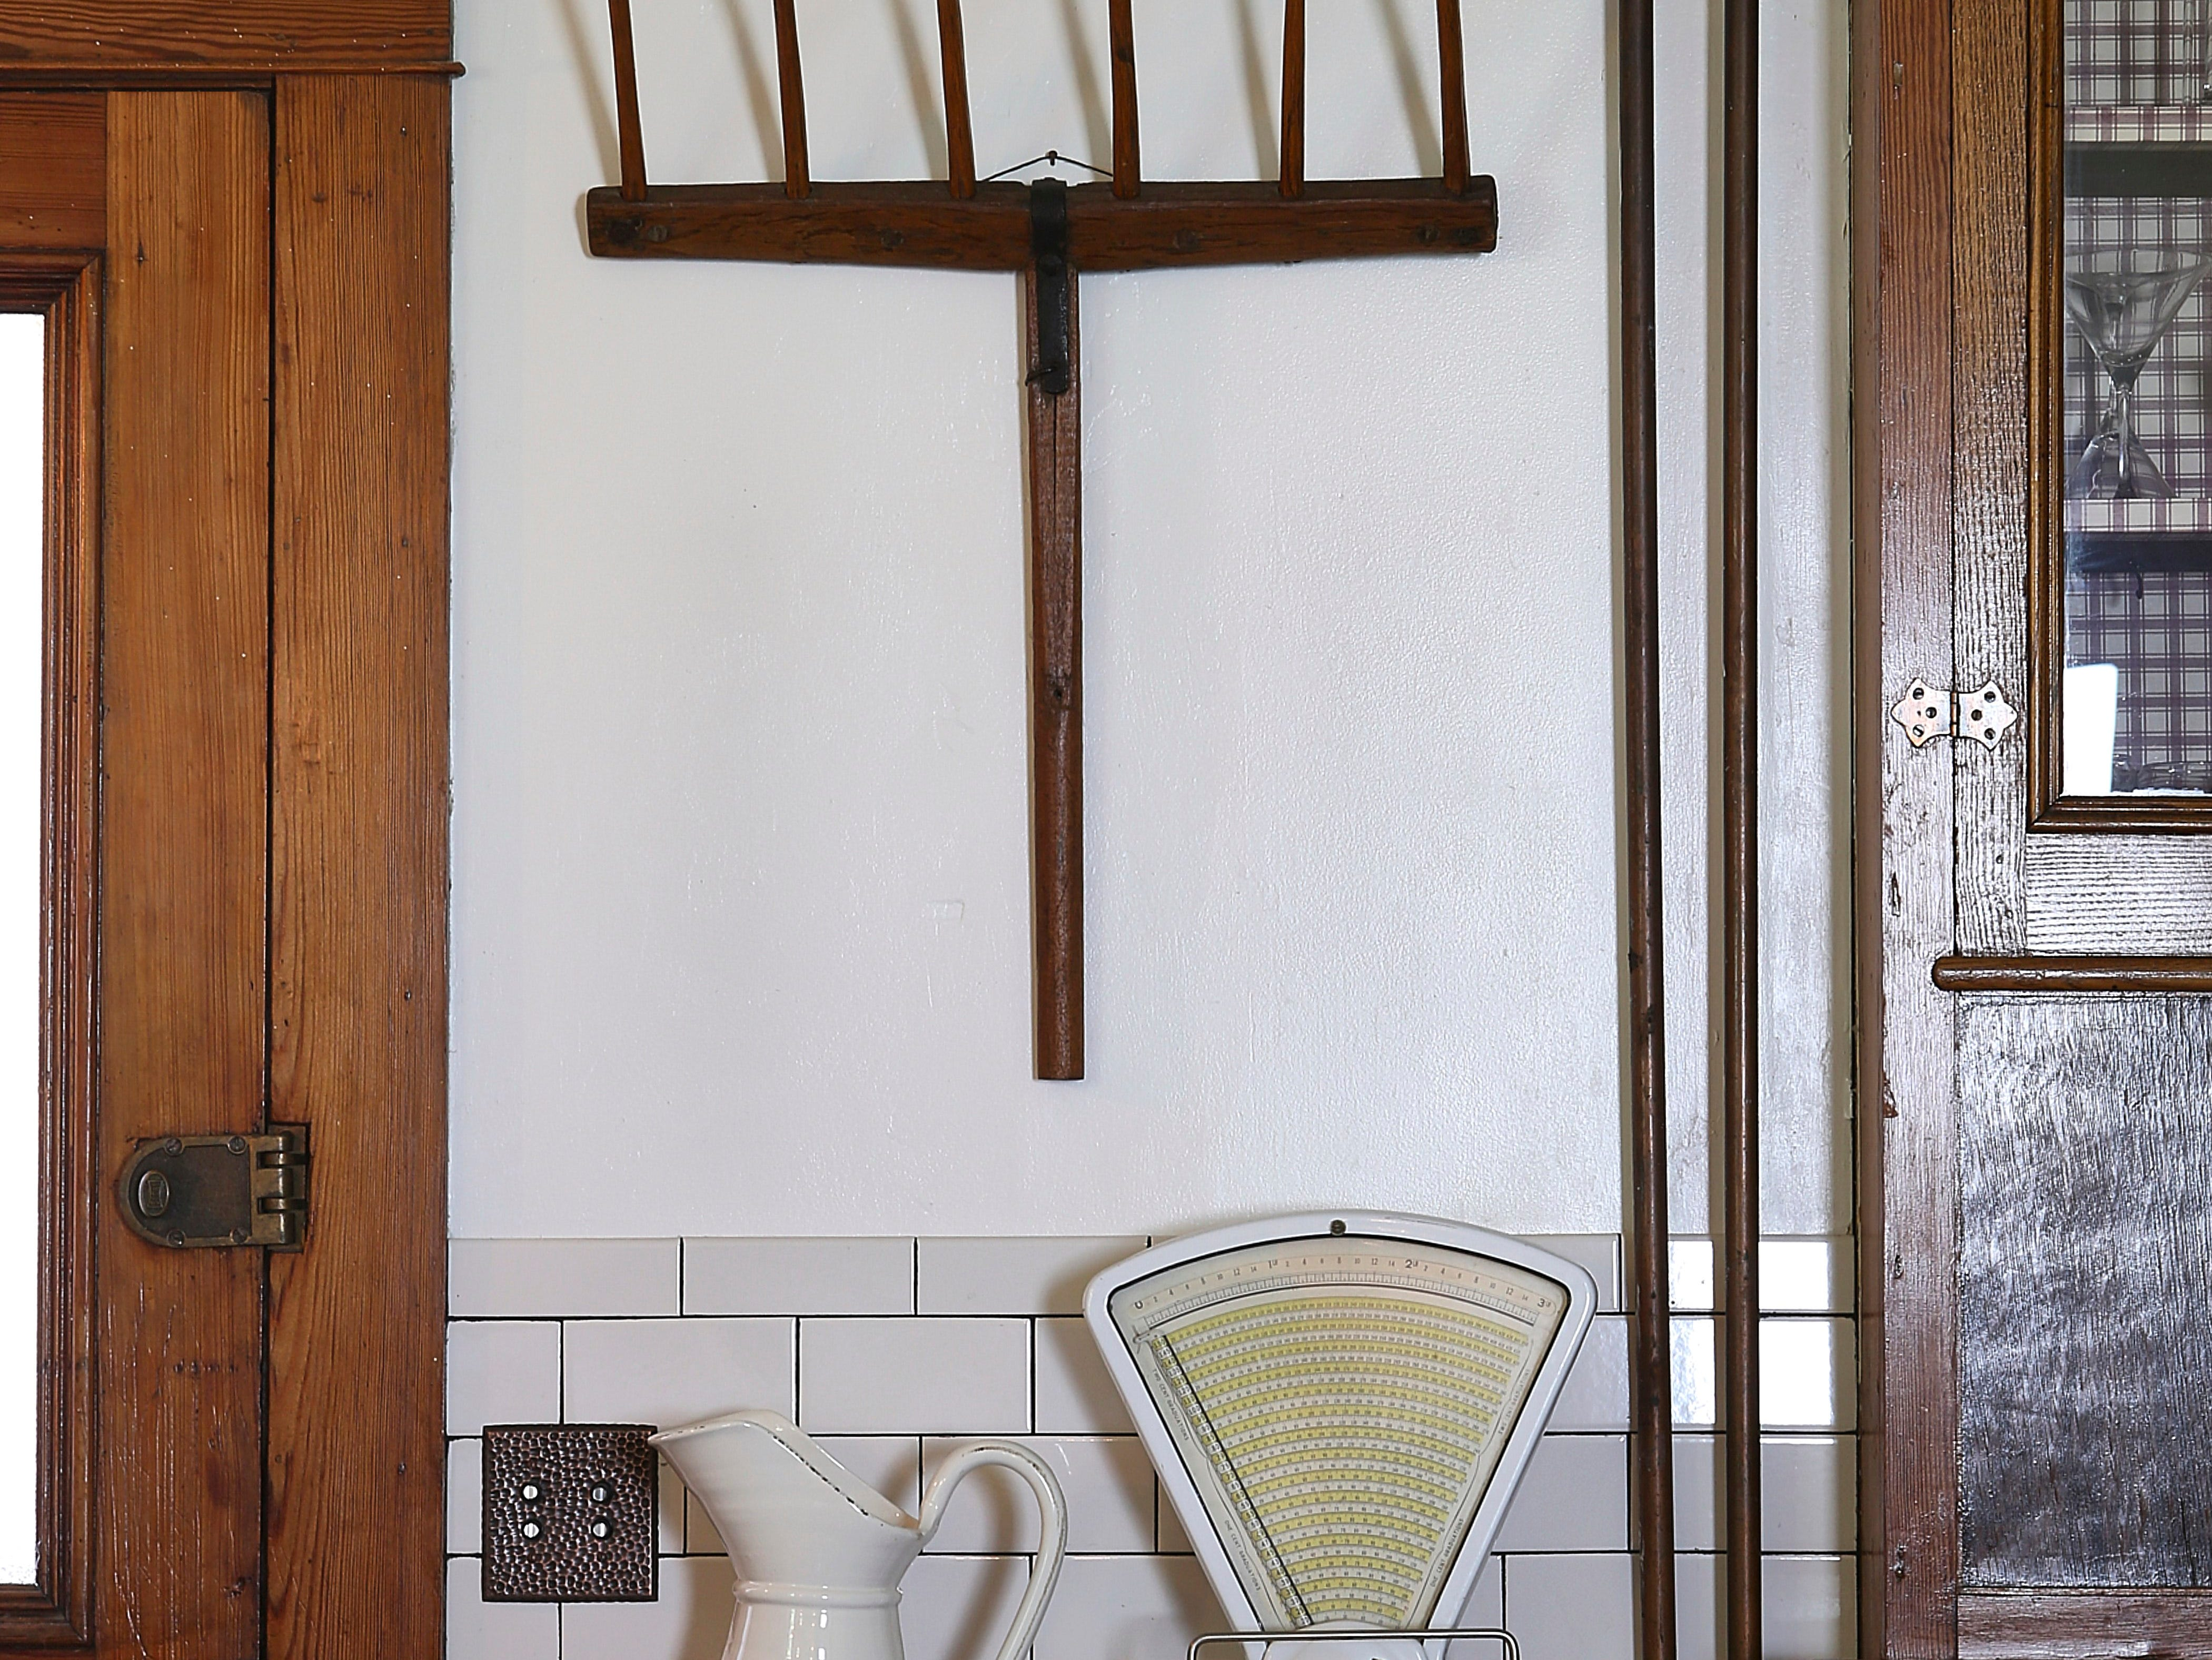 Hung as art, a simple – and very big – antique pitchfork feels sculptural and modern.